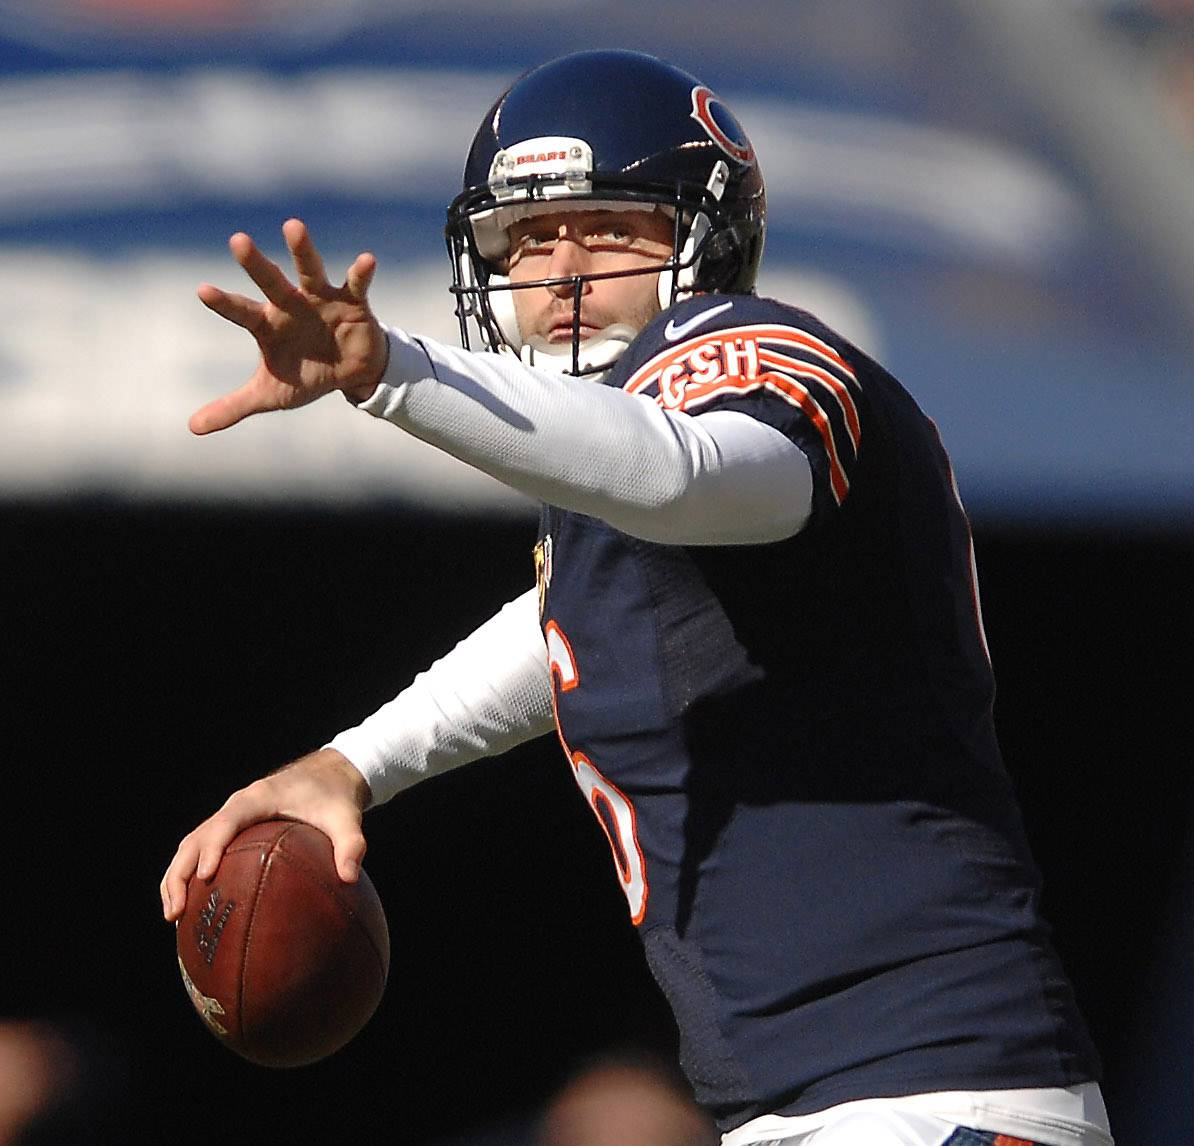 While Bears like Cutler's game, Angelo not so much